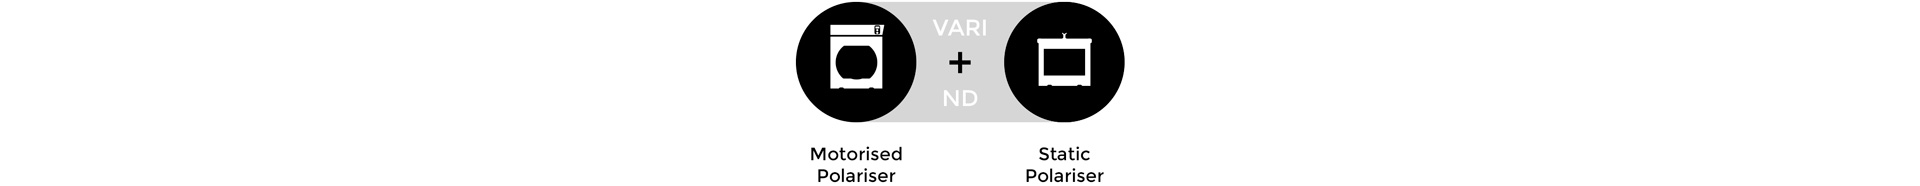 Cinefade standalone variable ND filter application icon VariND